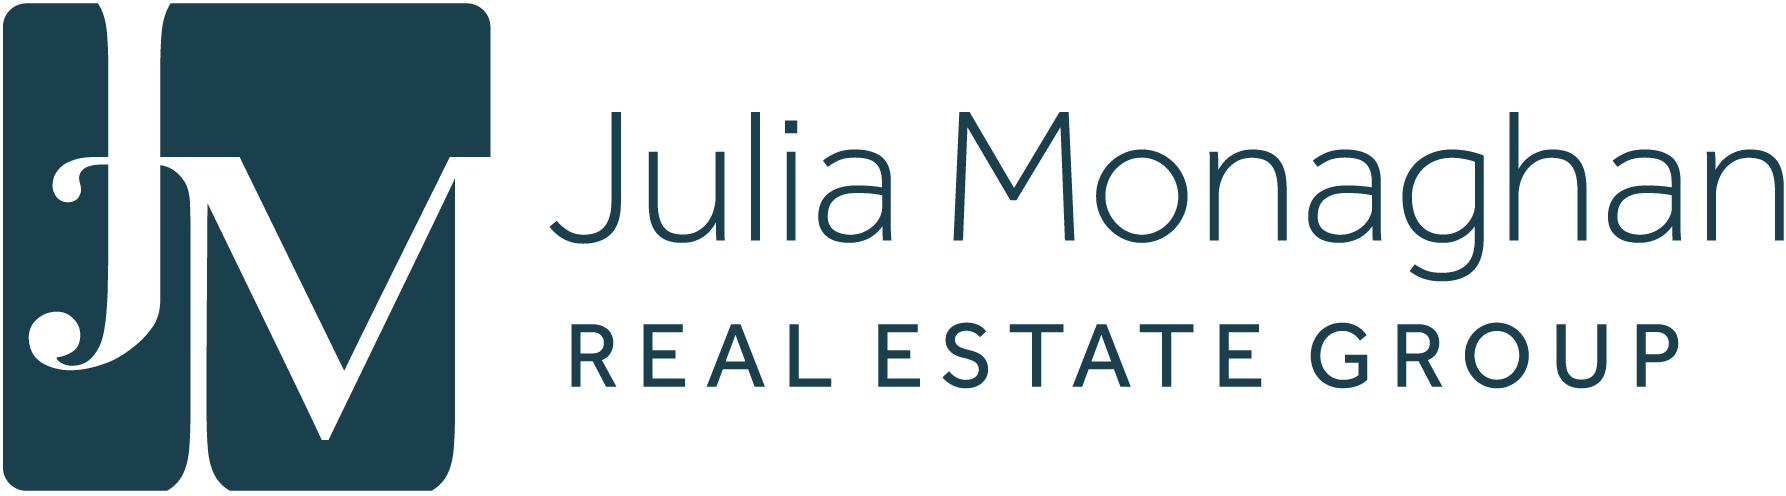 Julia Monaghan Real Estate